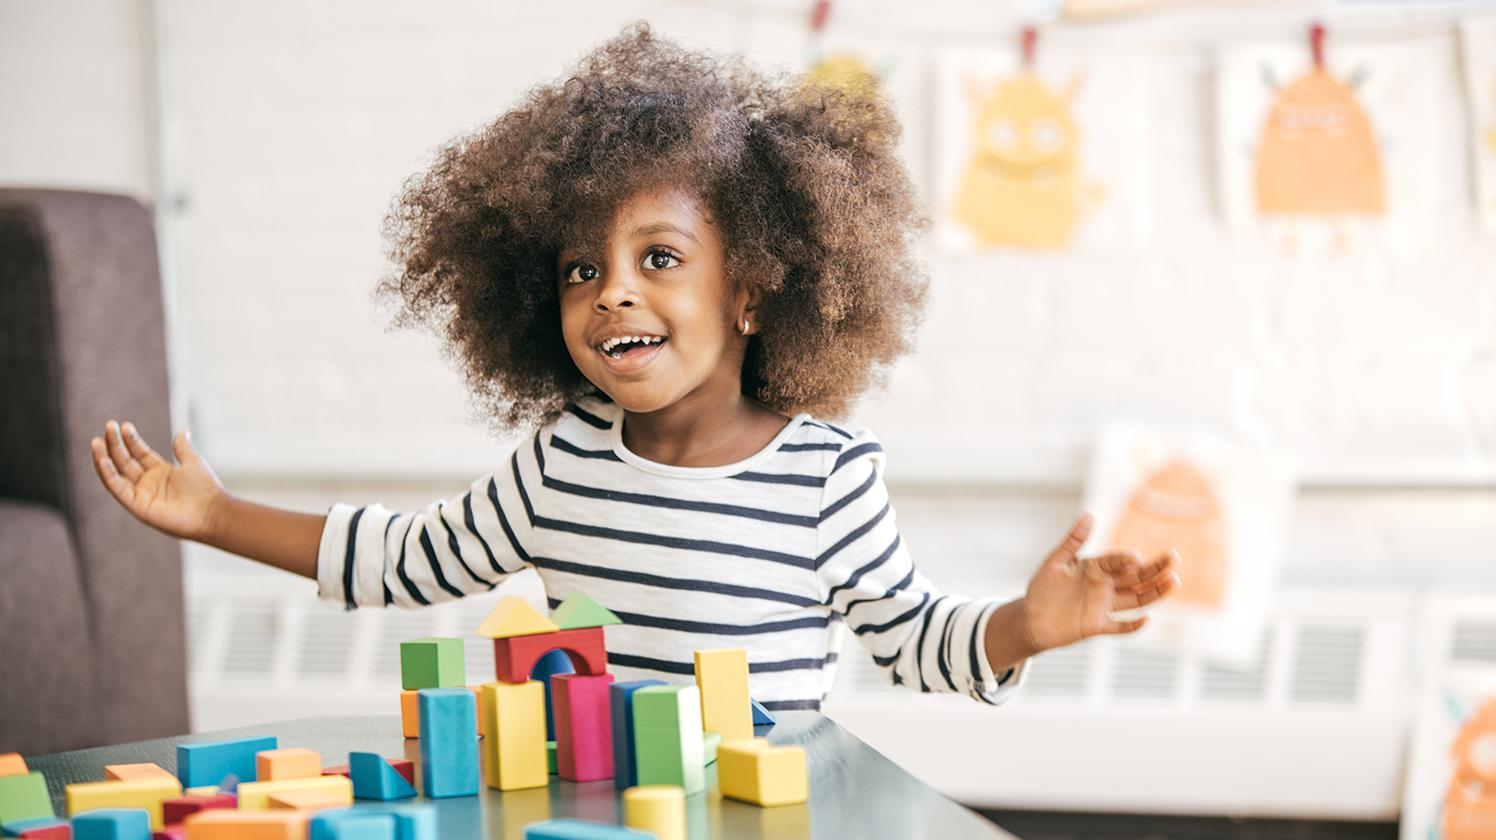 BRITA water for school – girl with toy bricks